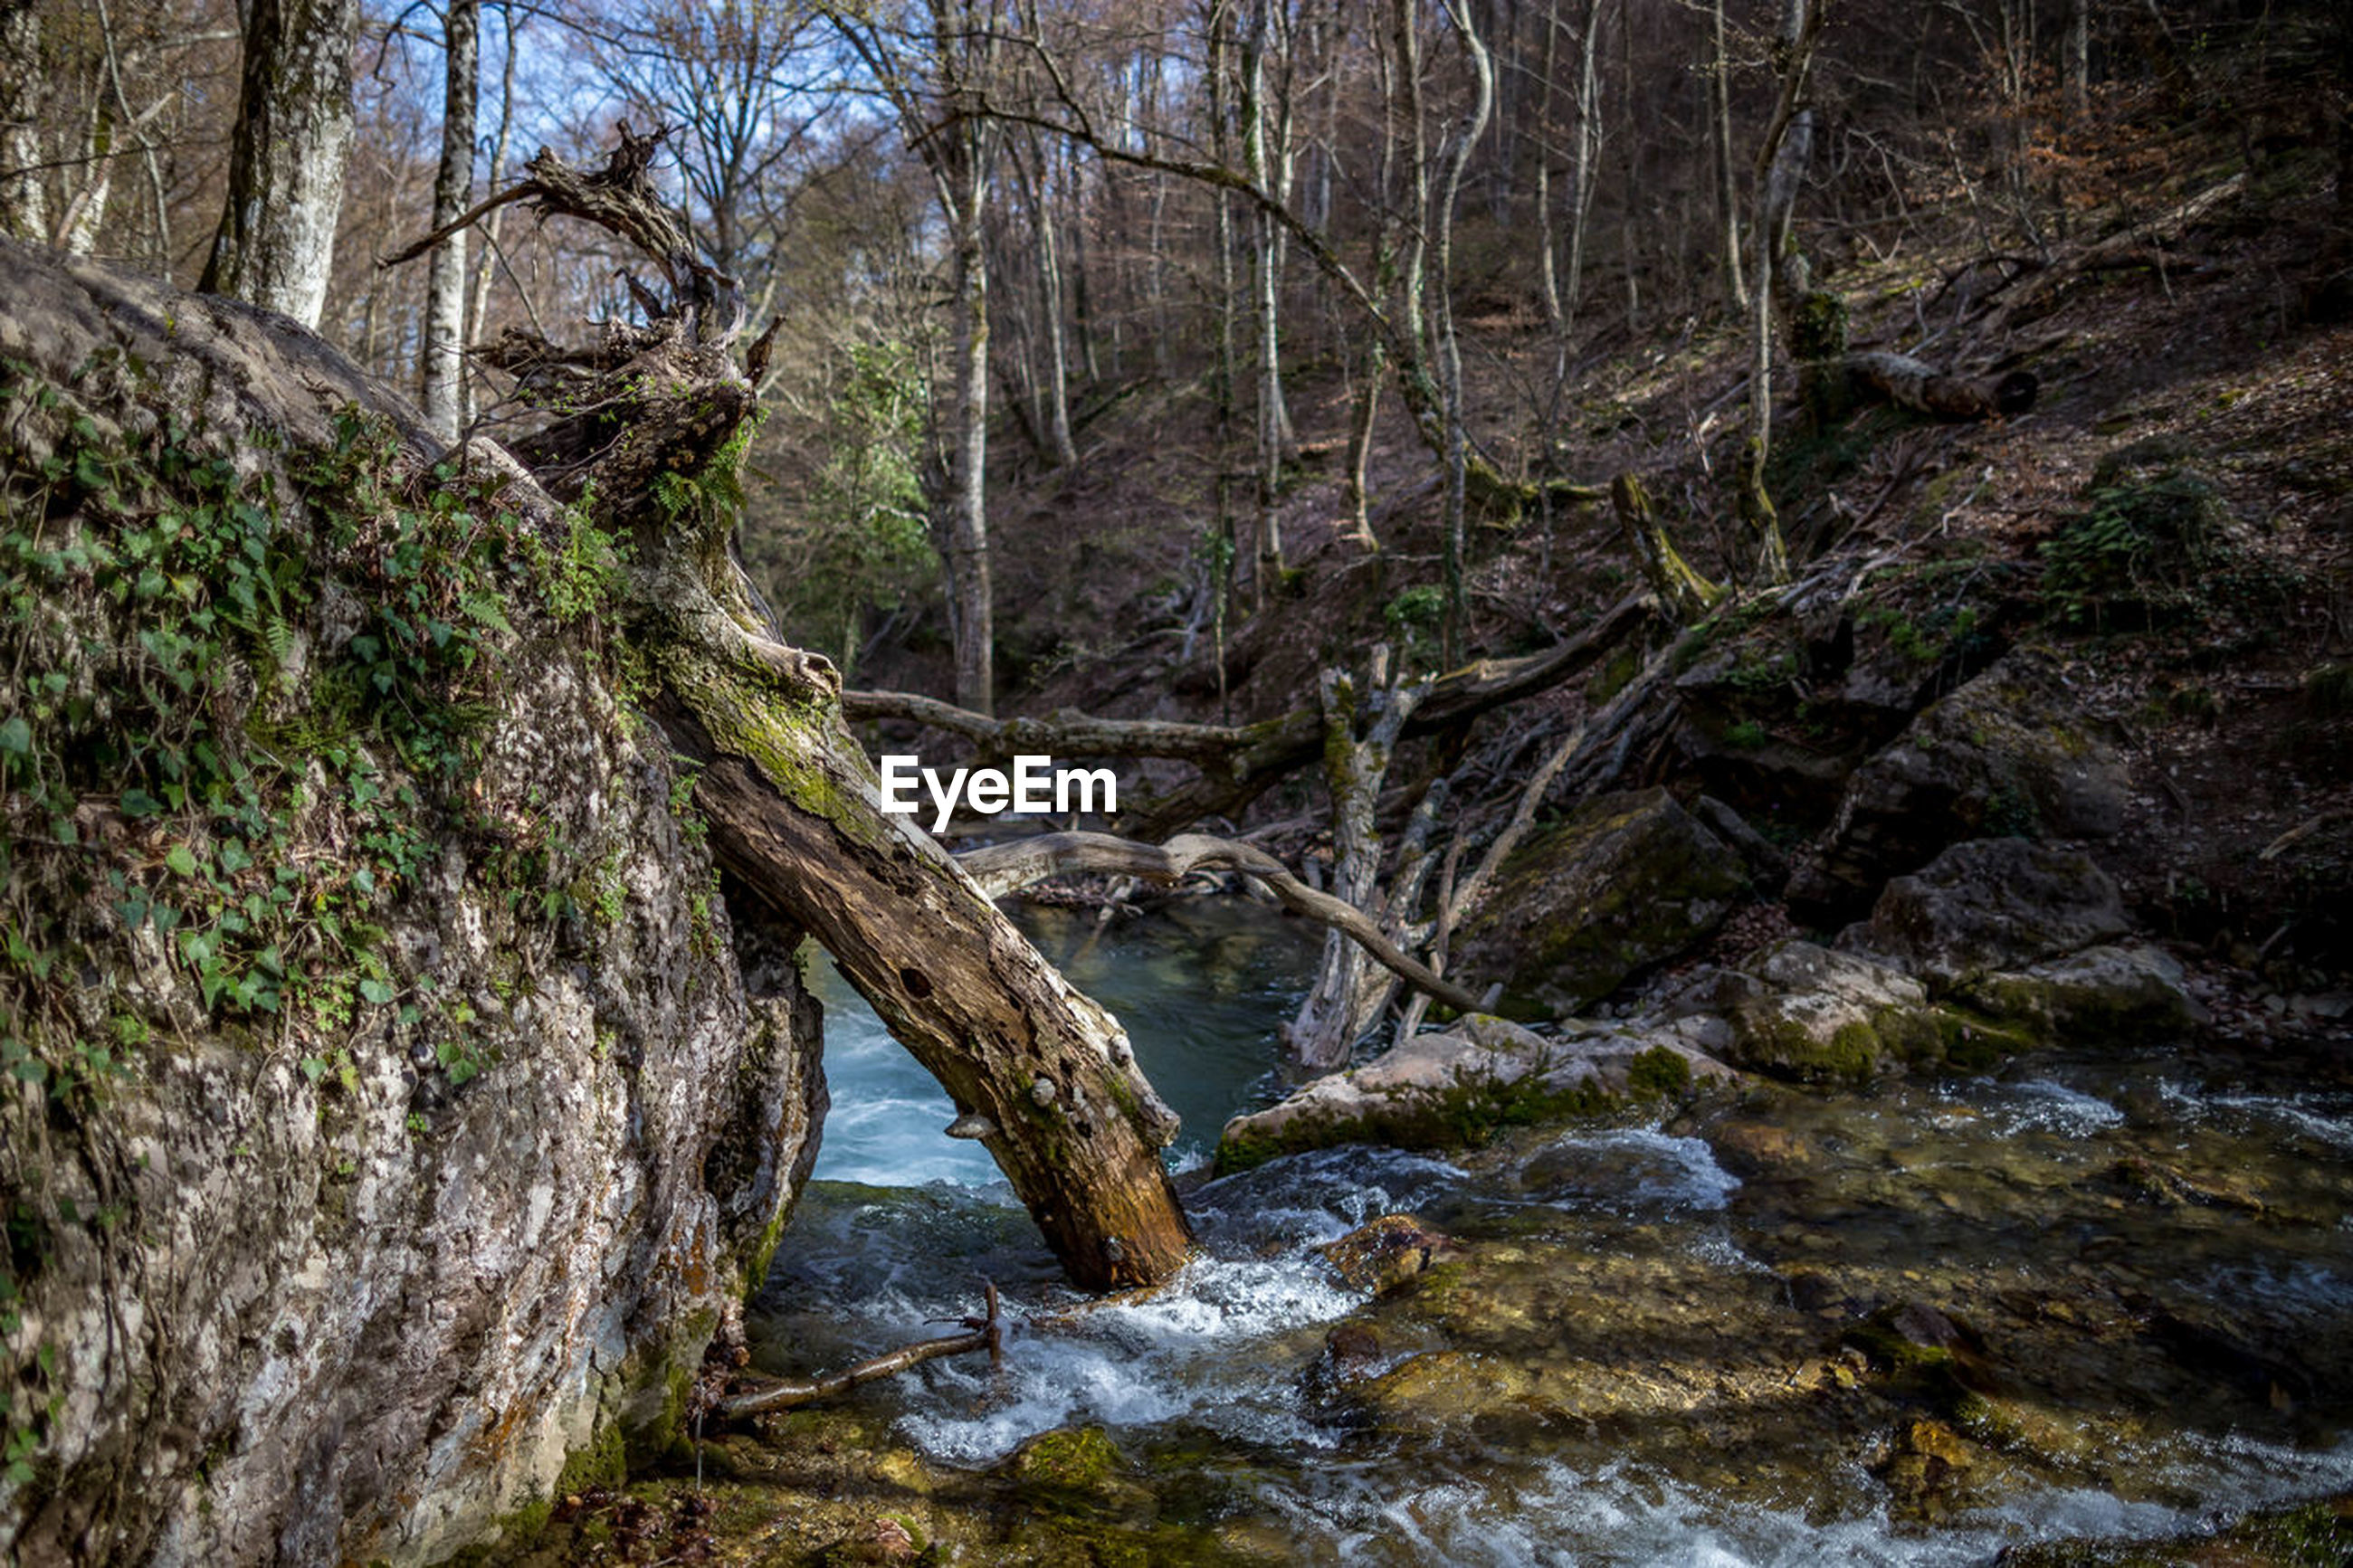 tree, water, forest, land, plant, nature, no people, tranquility, day, scenics - nature, rock, stream - flowing water, beauty in nature, river, non-urban scene, flowing water, rock - object, outdoors, environment, flowing, woodland, rainforest